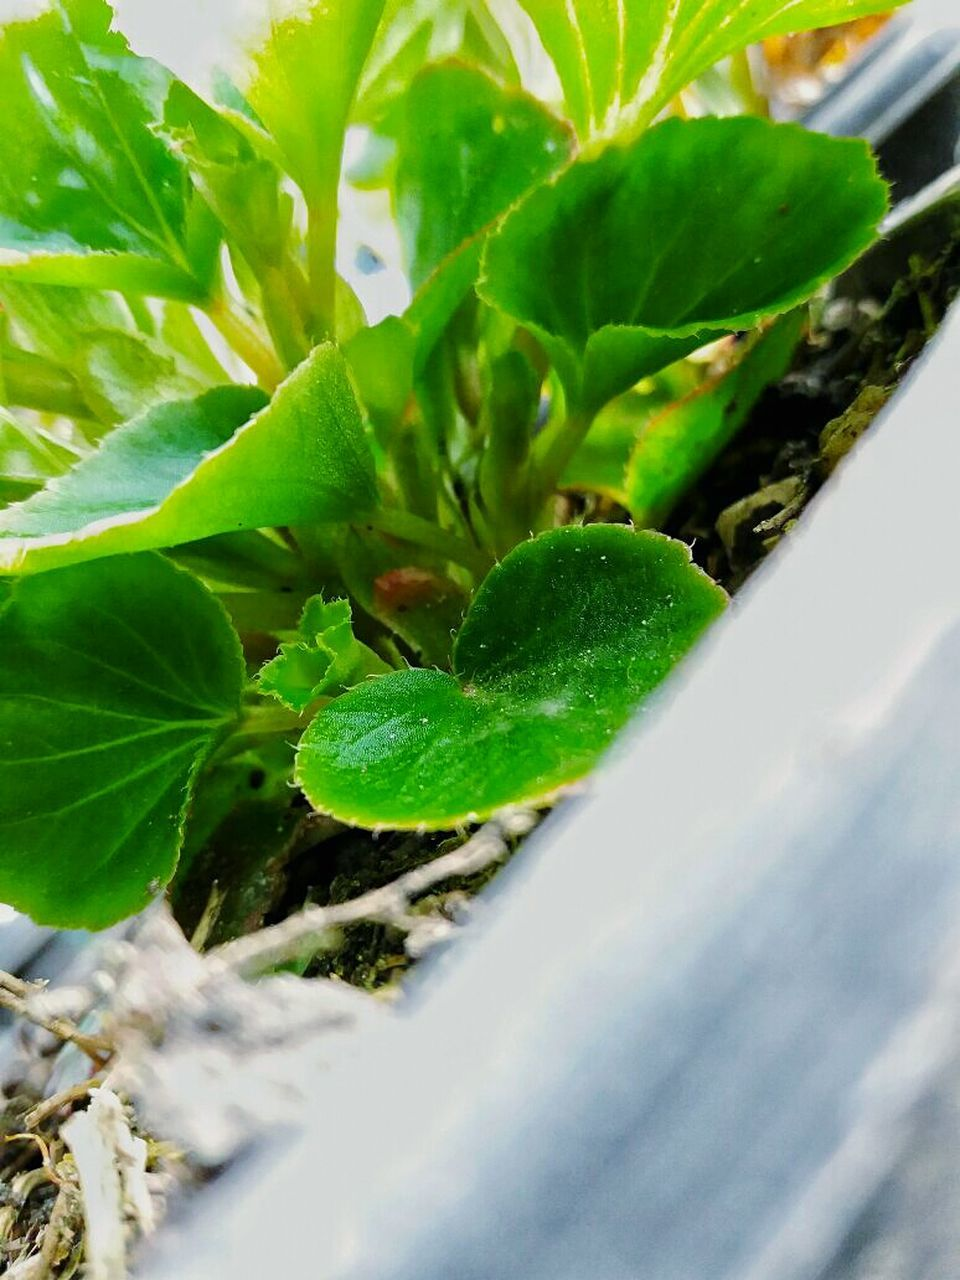 leaf, green color, growth, plant, nature, no people, close-up, day, outdoors, beauty in nature, freshness, fragility